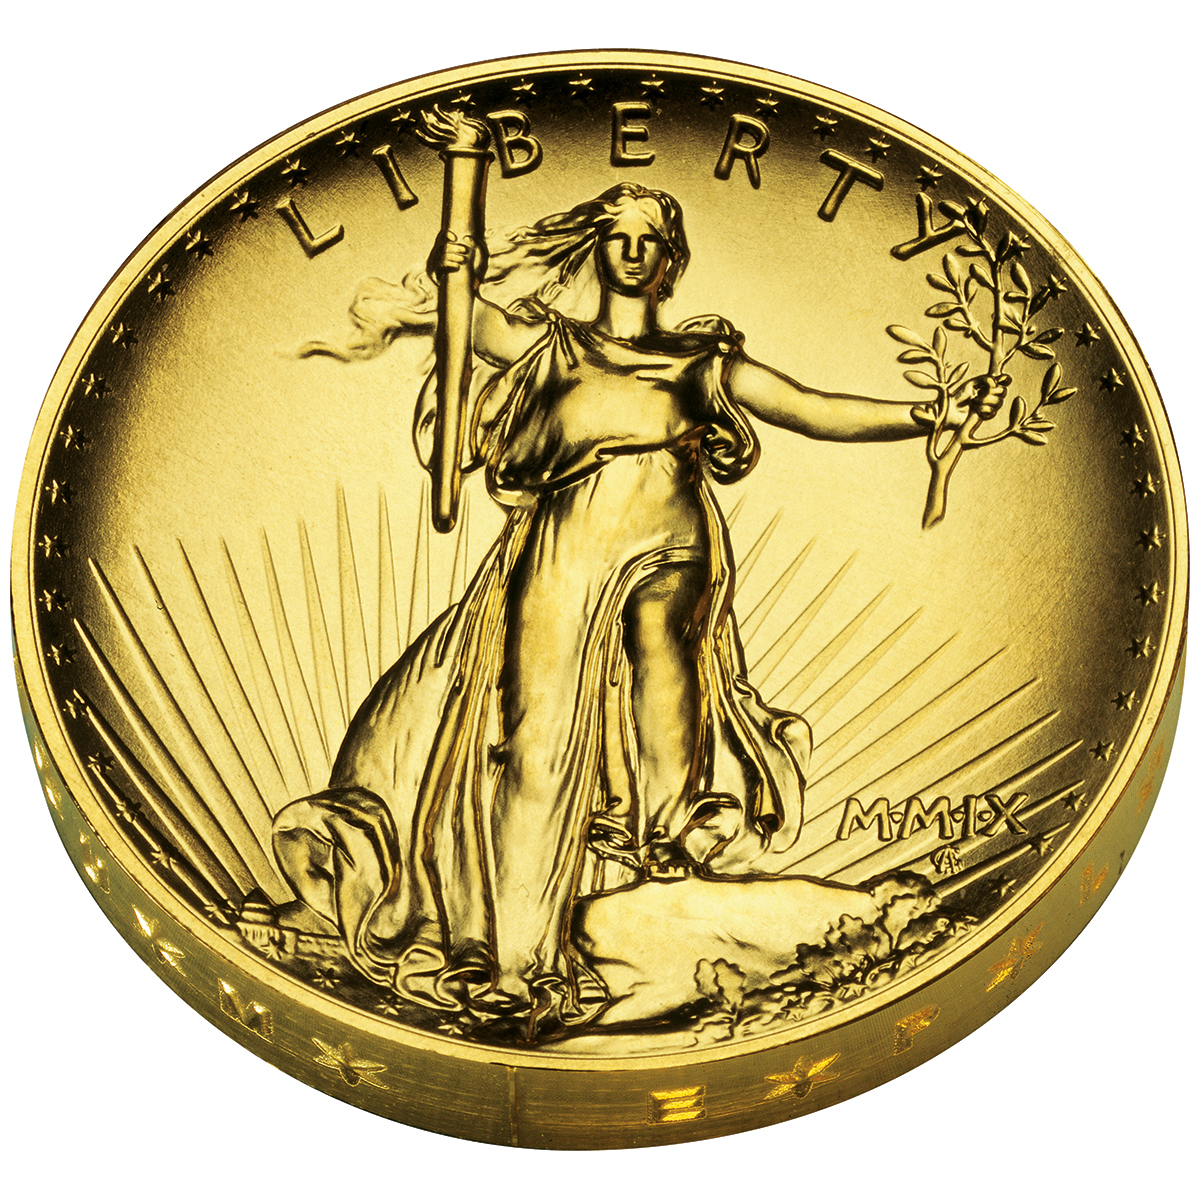 2009 Ultra High Relief Double Eagle Gold Coin Obverse